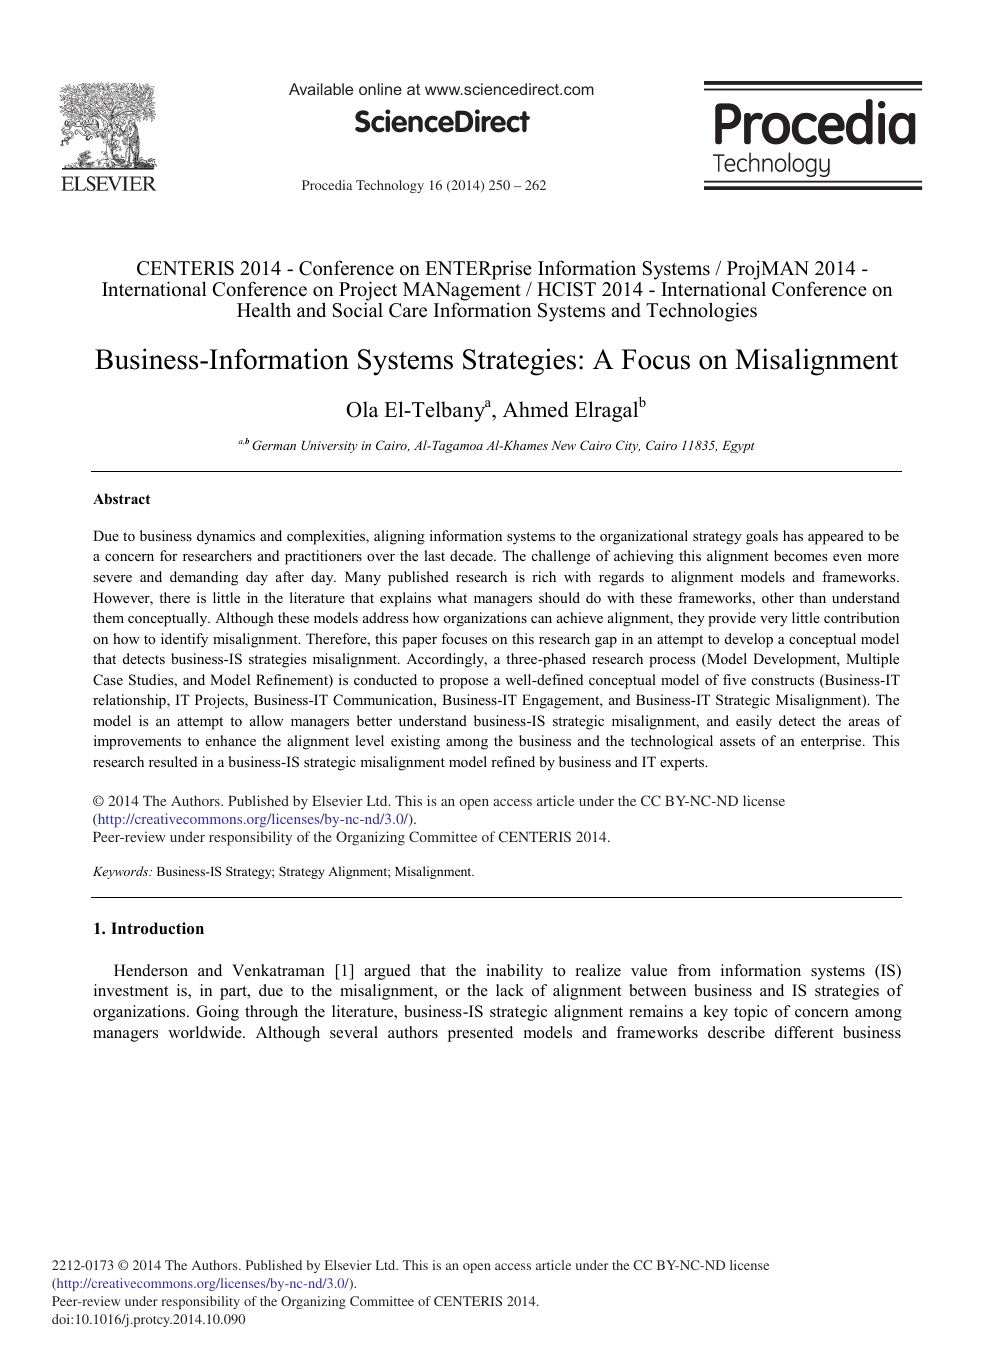 Business-information Systems Strategies: A Focus on